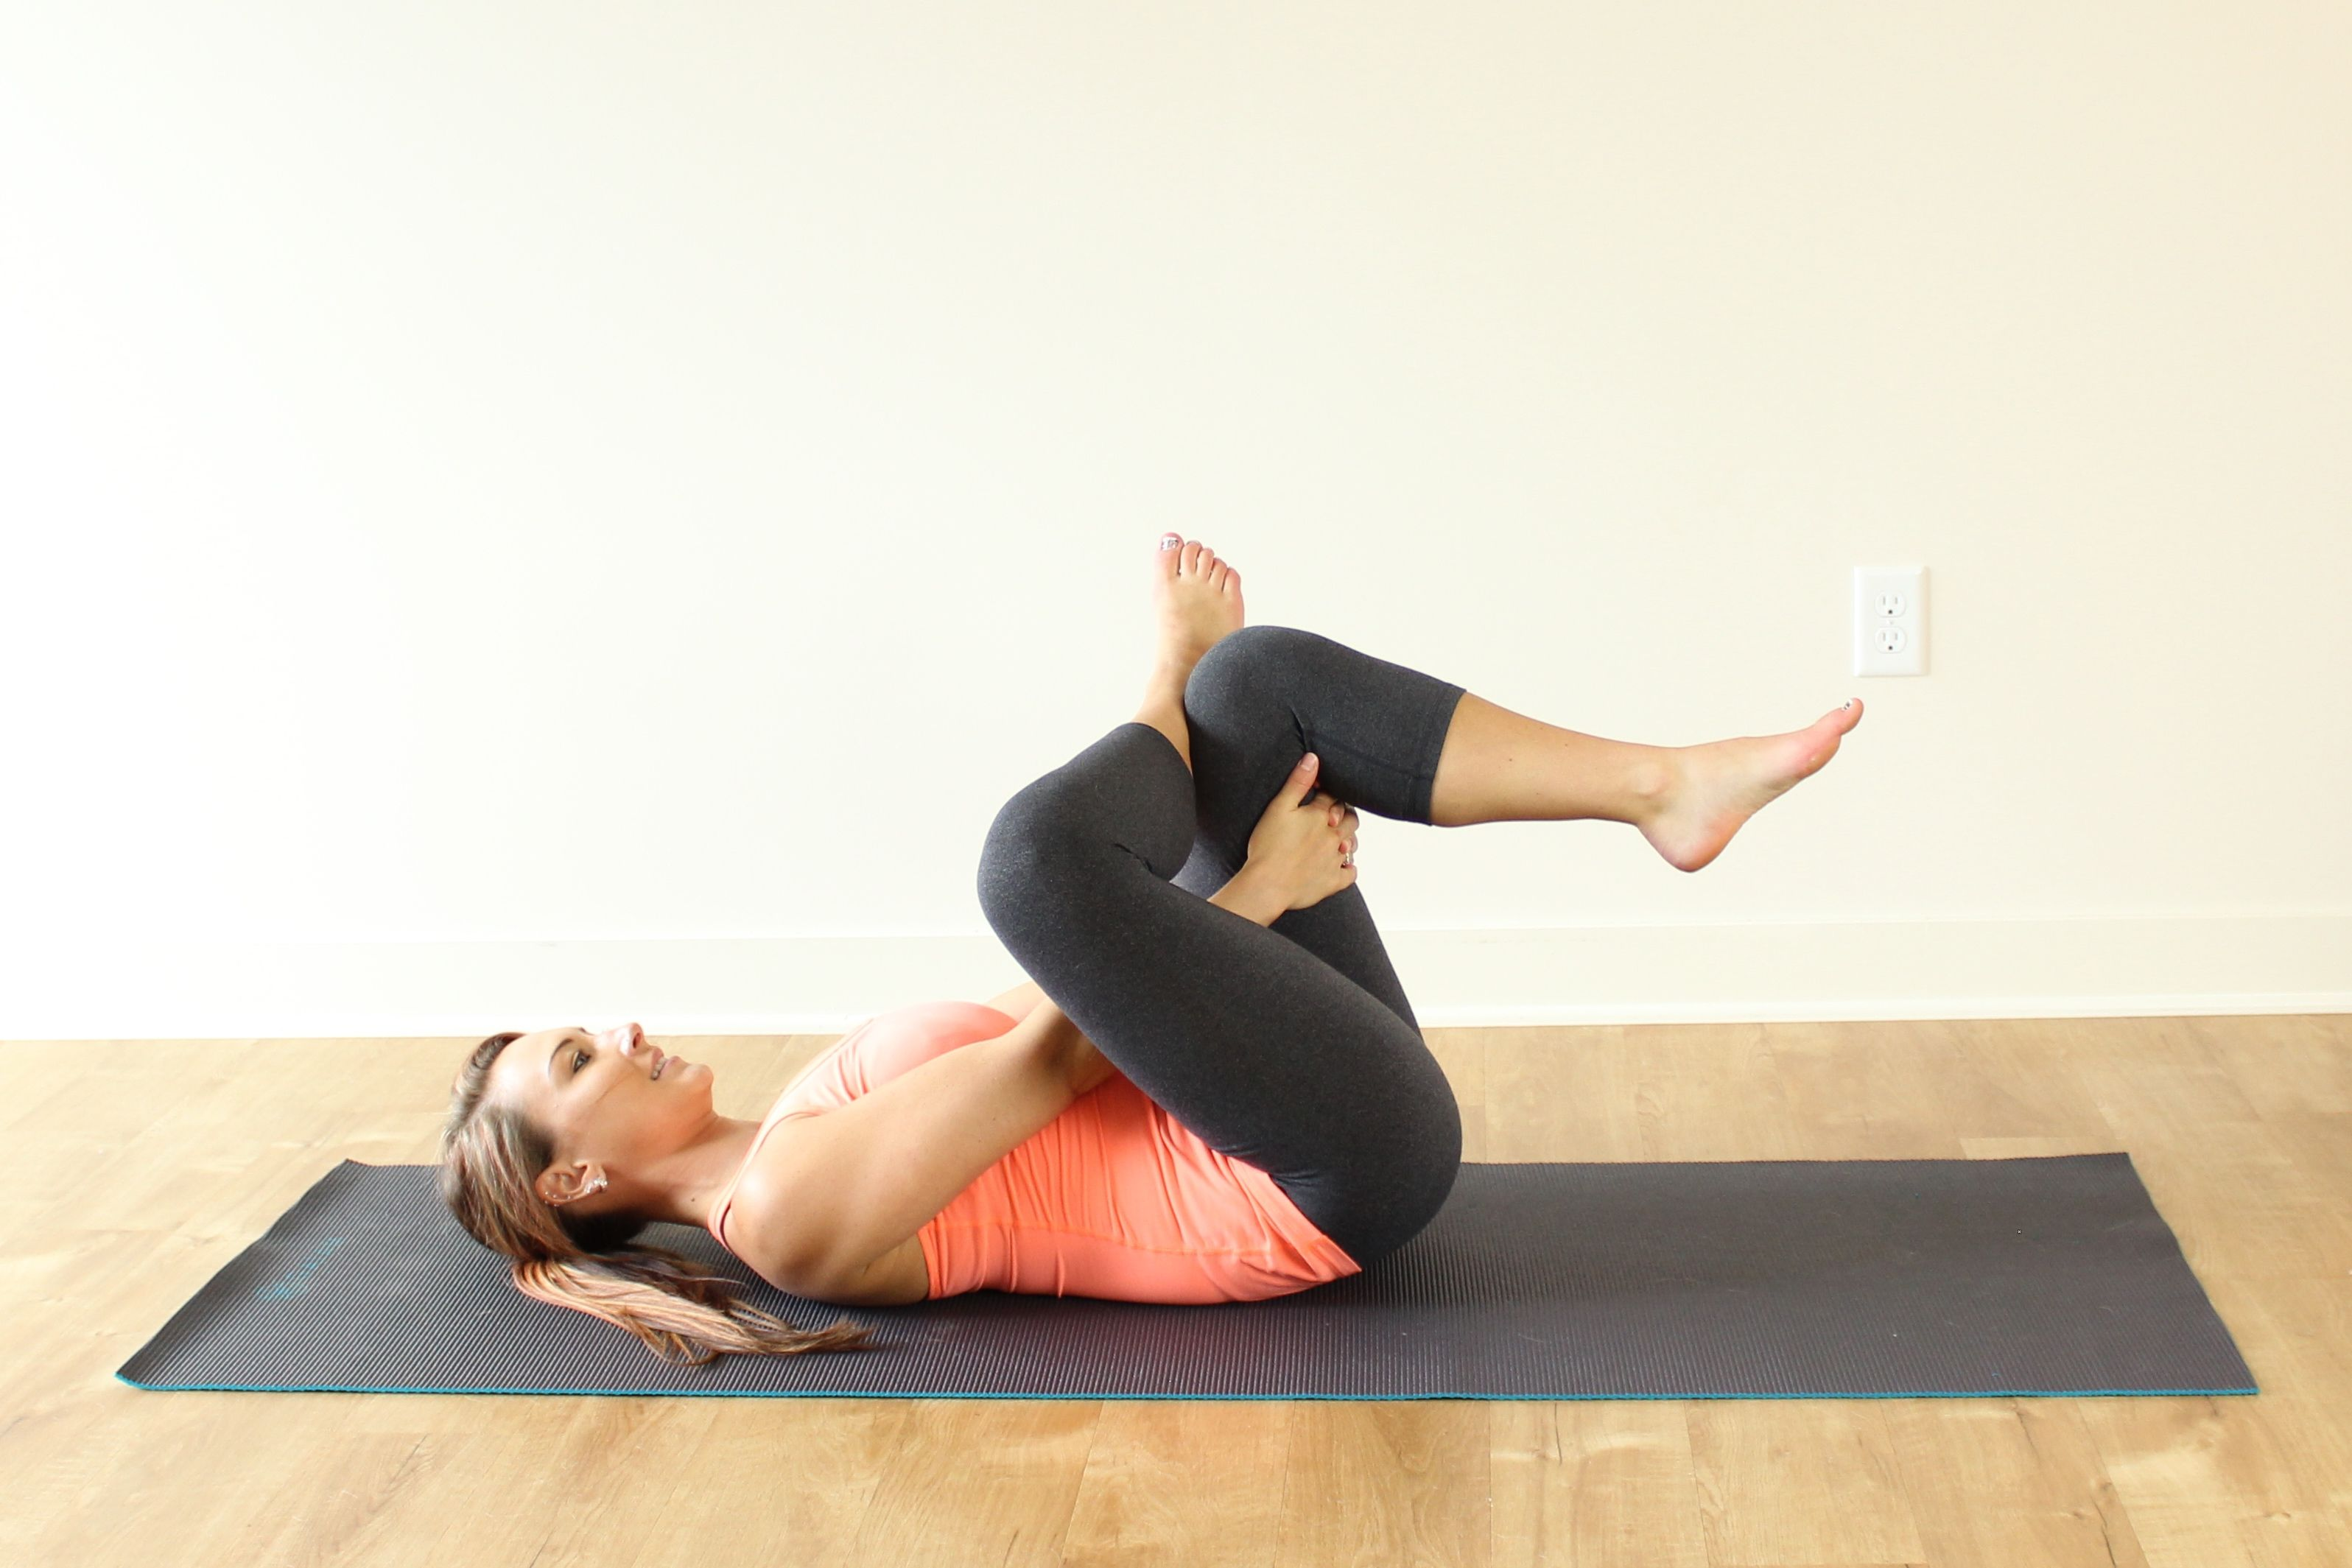 Lay On Your Back With Feet Flat The Floor And Knees Bent Cross RIGHT Ankle Over LEFT Knee As If Making A Figure 4